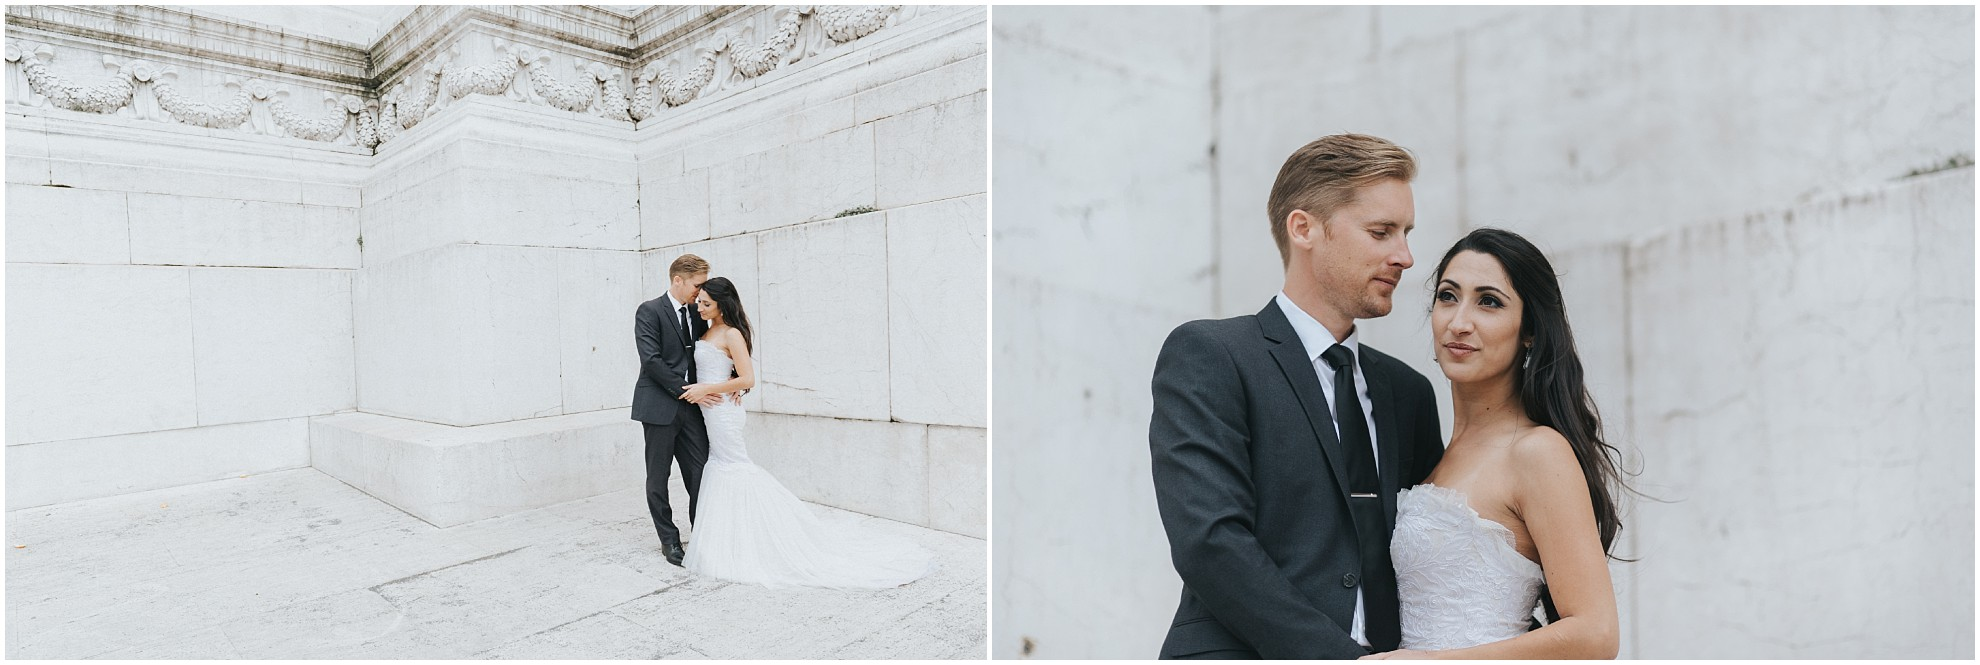 rome-wedding-photographer-0018